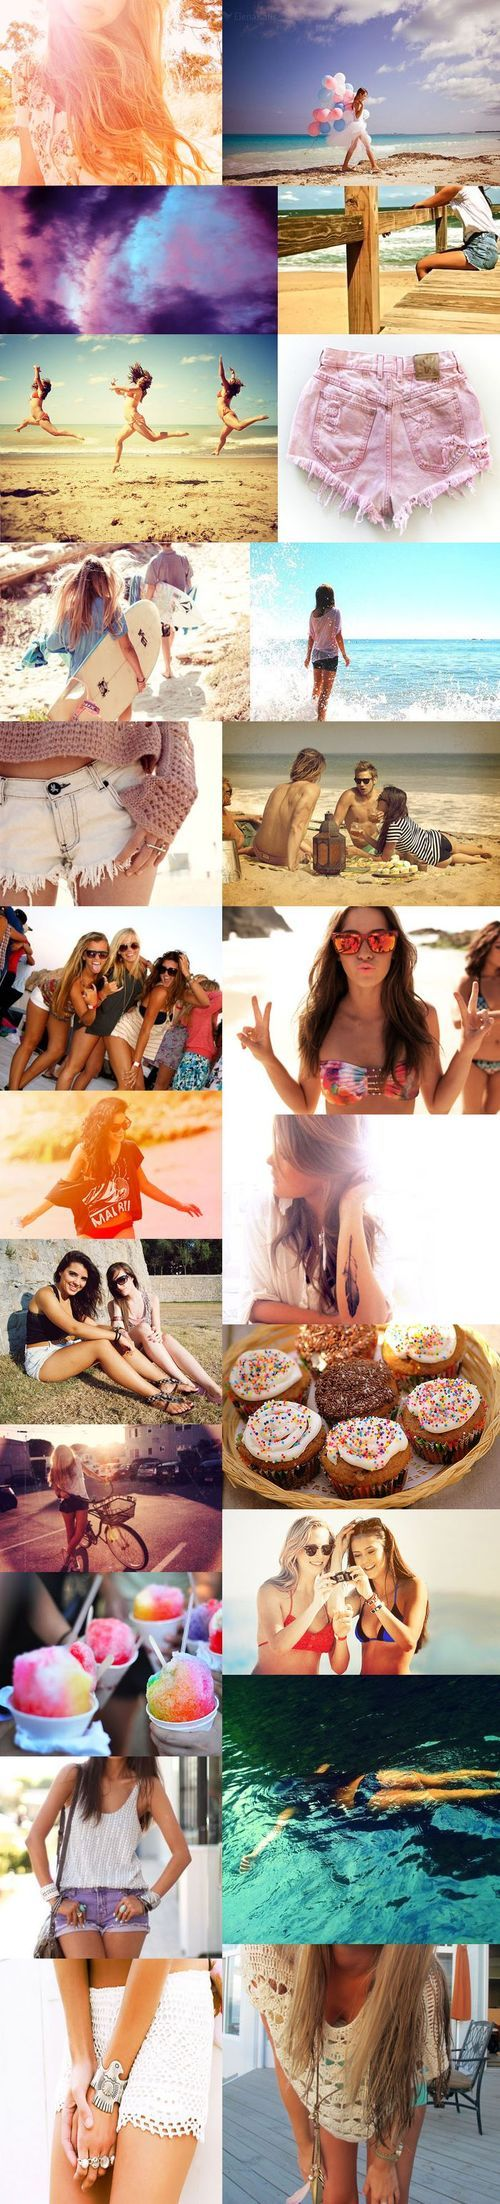 Why did I look up summer pictures, now I'm gonna get too excited too early, it's not even spring yet.